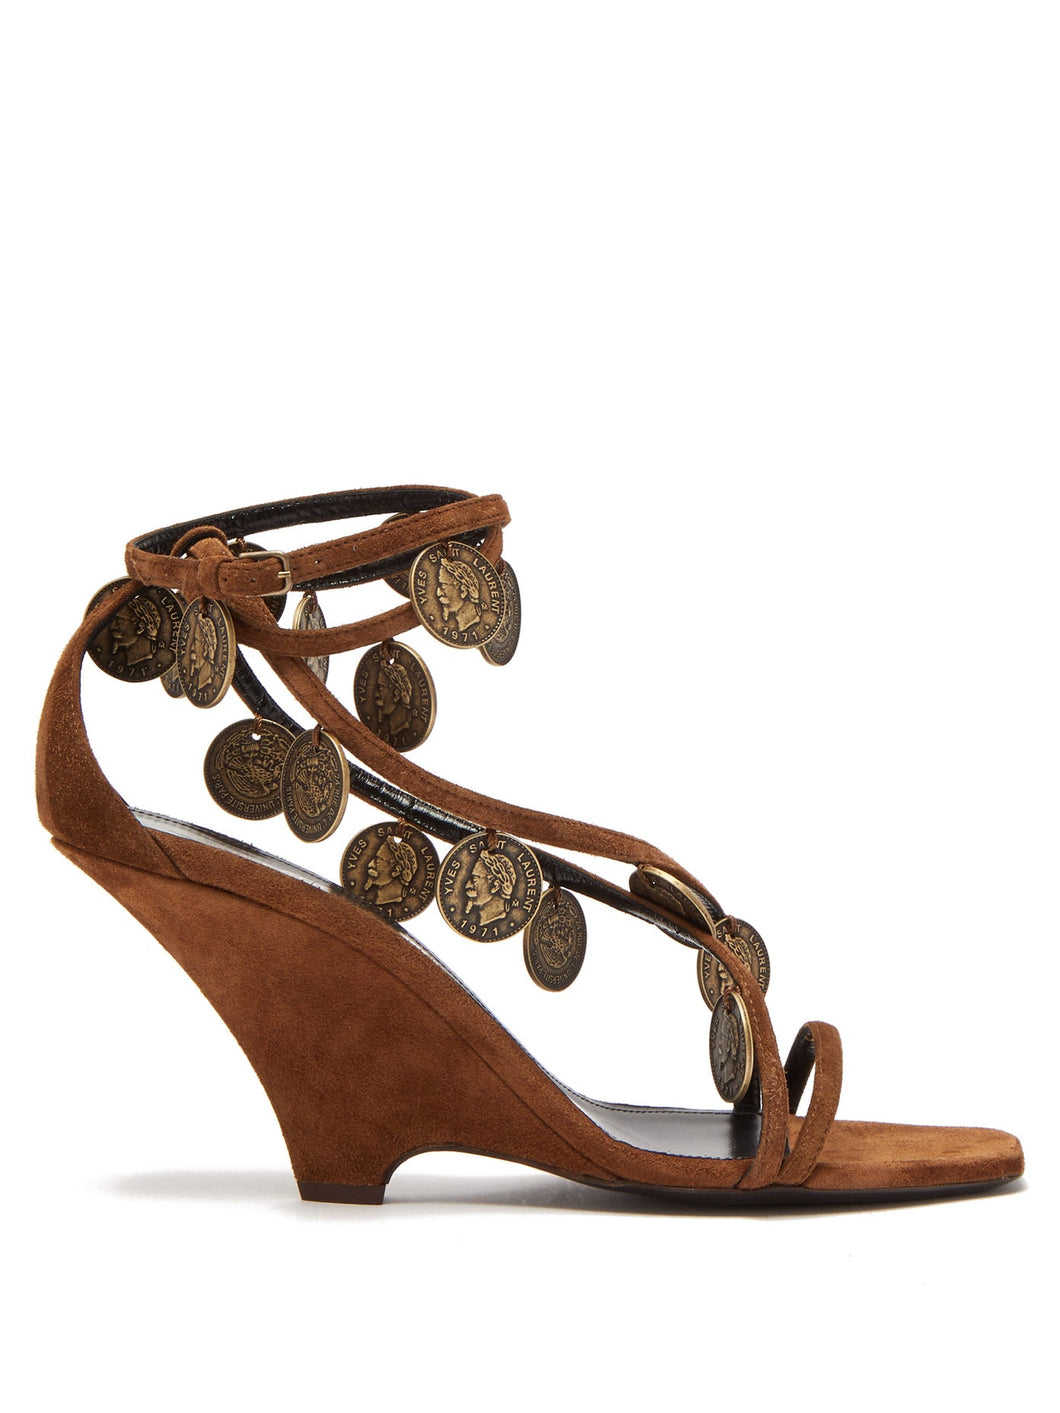 Kim coin-embellished suede wedge sandals